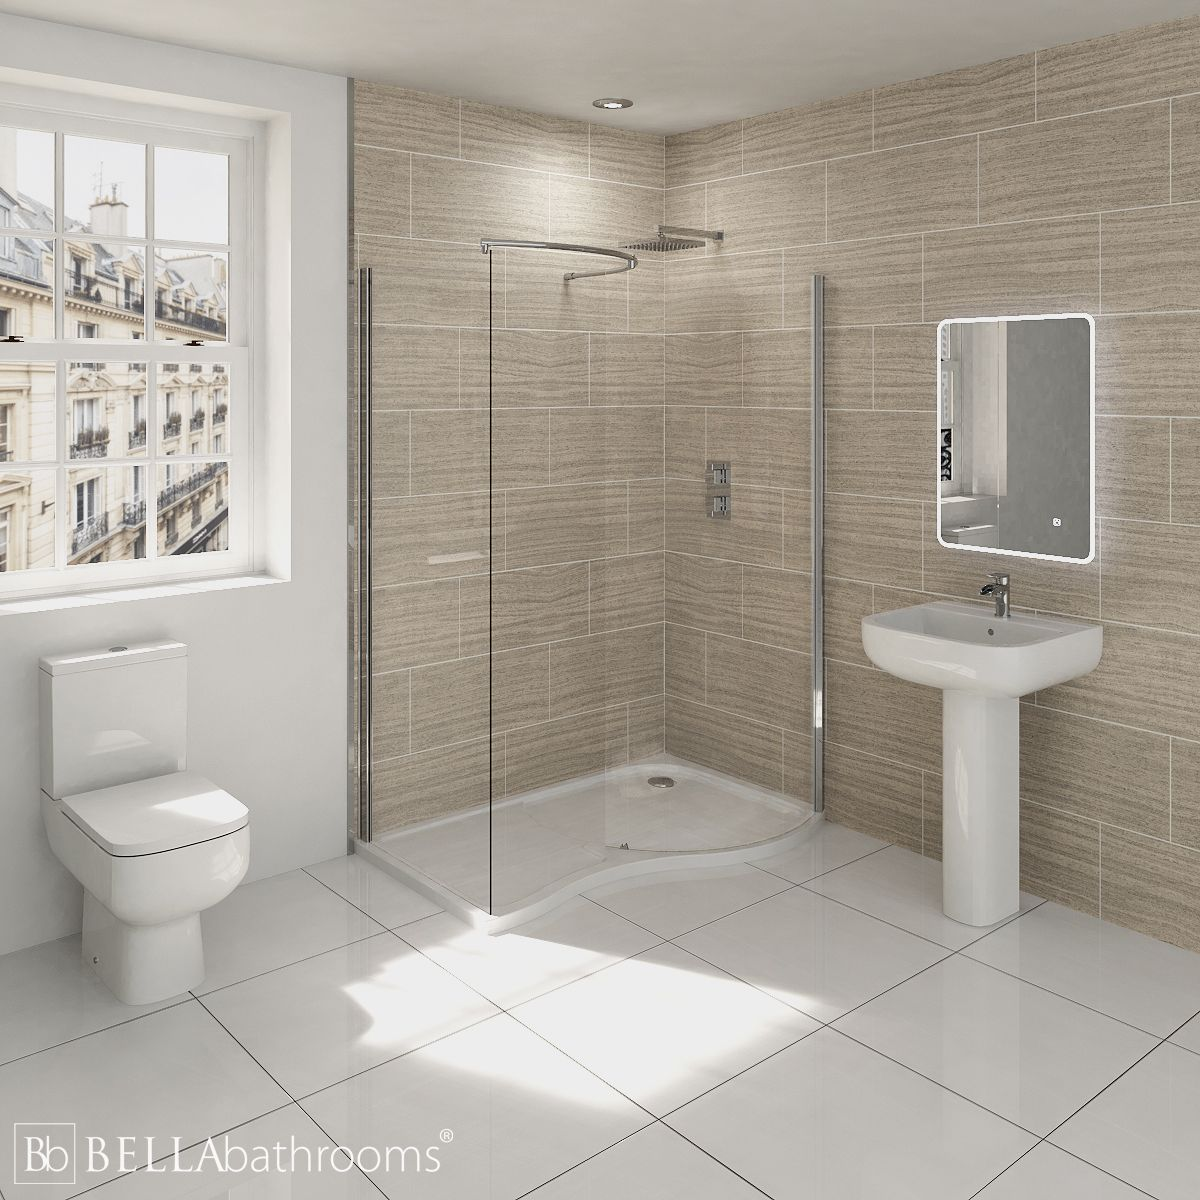 RAK Series 600 Bathroom Suite with Pacific Walk-In Shower Enclosure